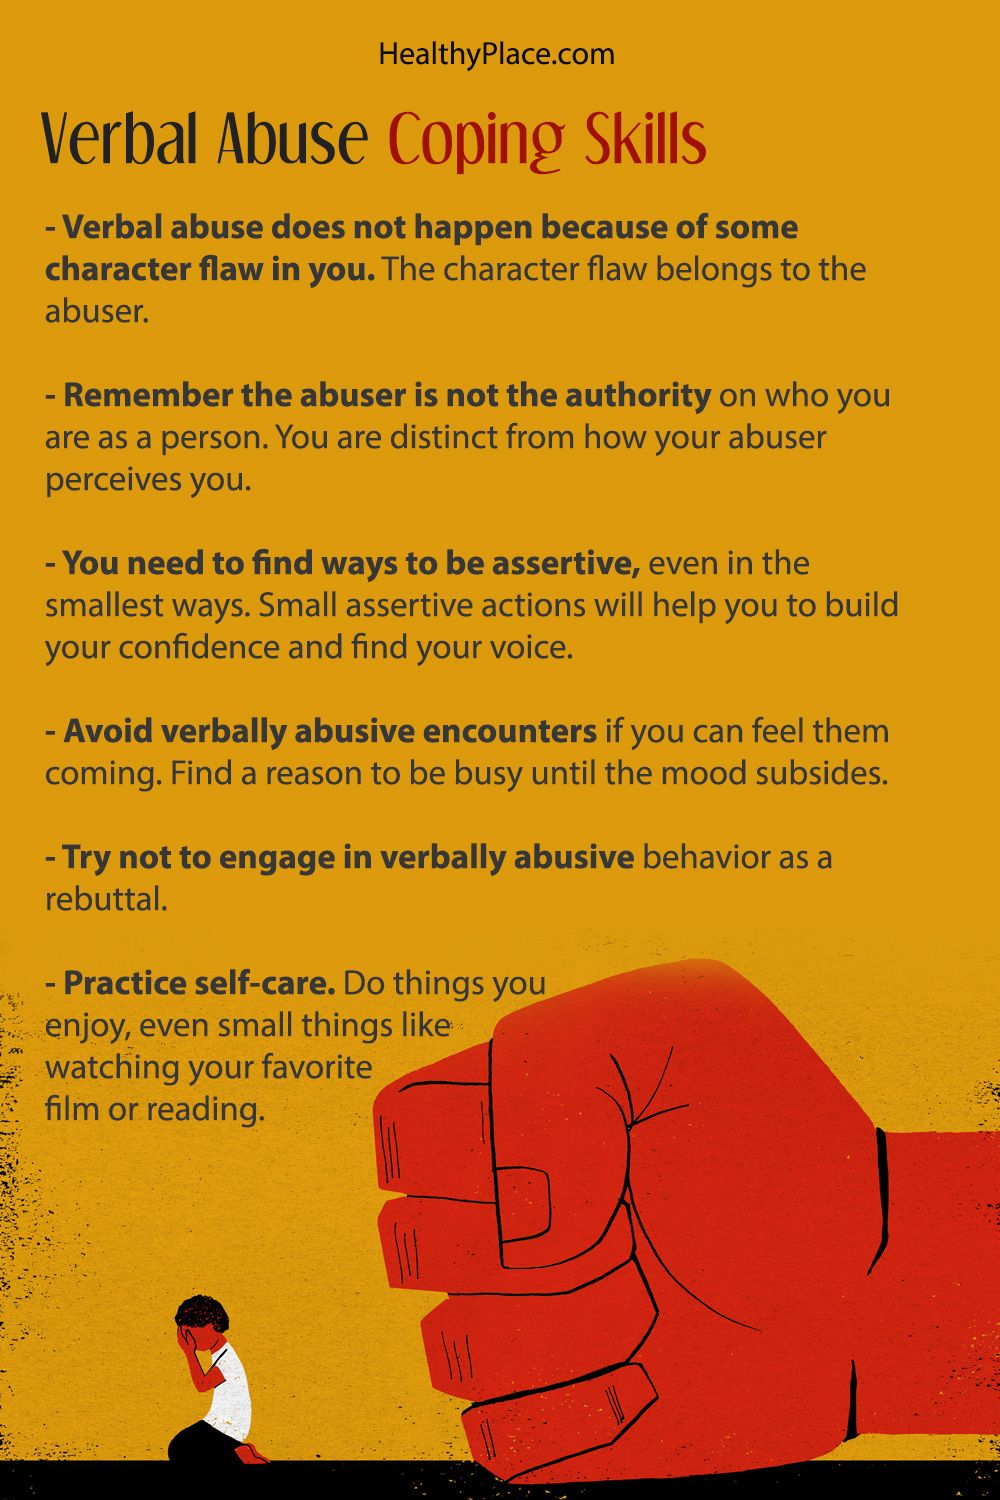 verbal abuse coping skills for when you can't just leave | abuse